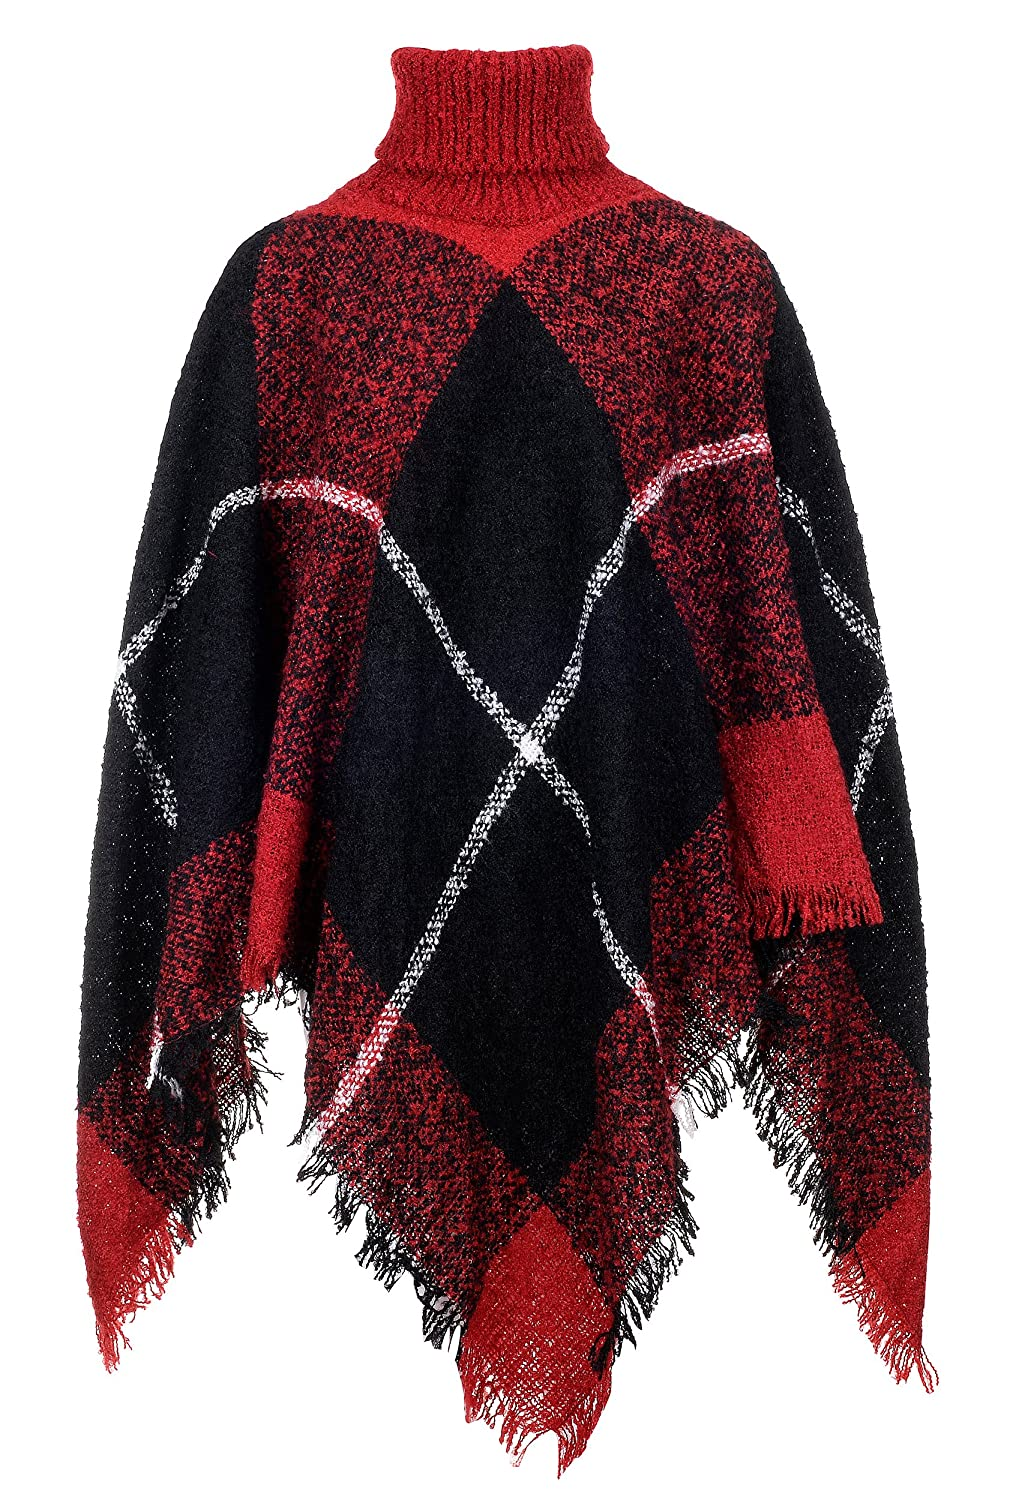 QZUnique Women Poncho Sweater Knit Turtleneck Cape Pullover Shawl Tassels Plaid GBD-MMY-WM69136-Heise